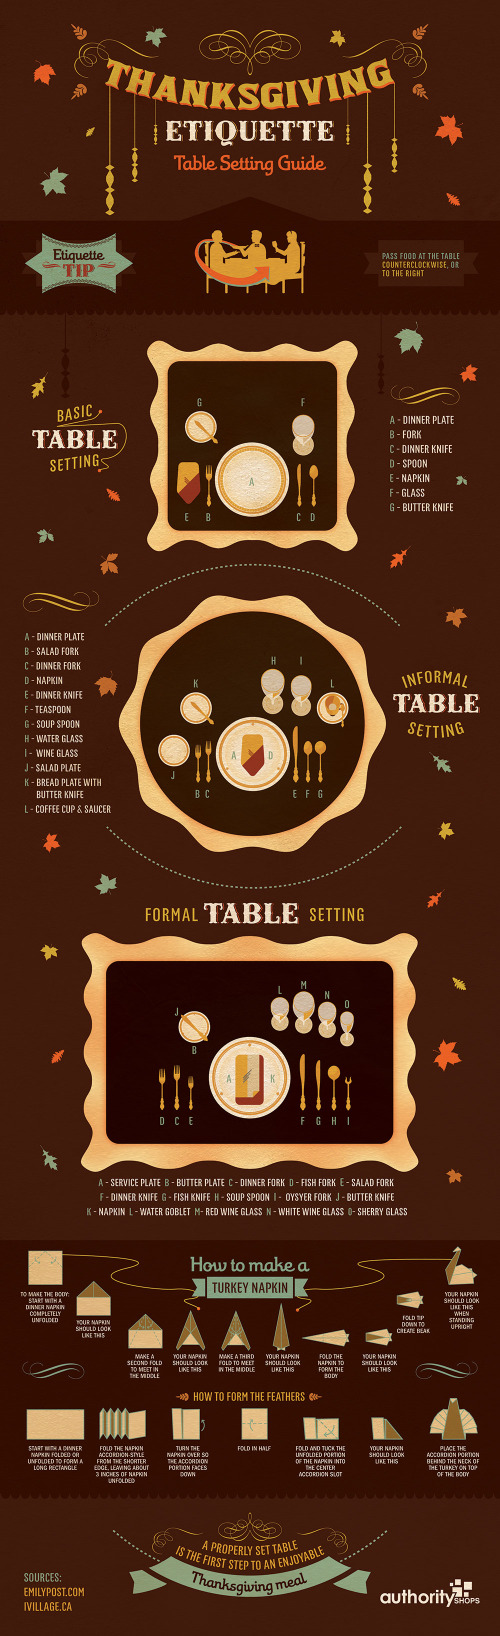 Thanksgiving Table Setting Diagrams infographic